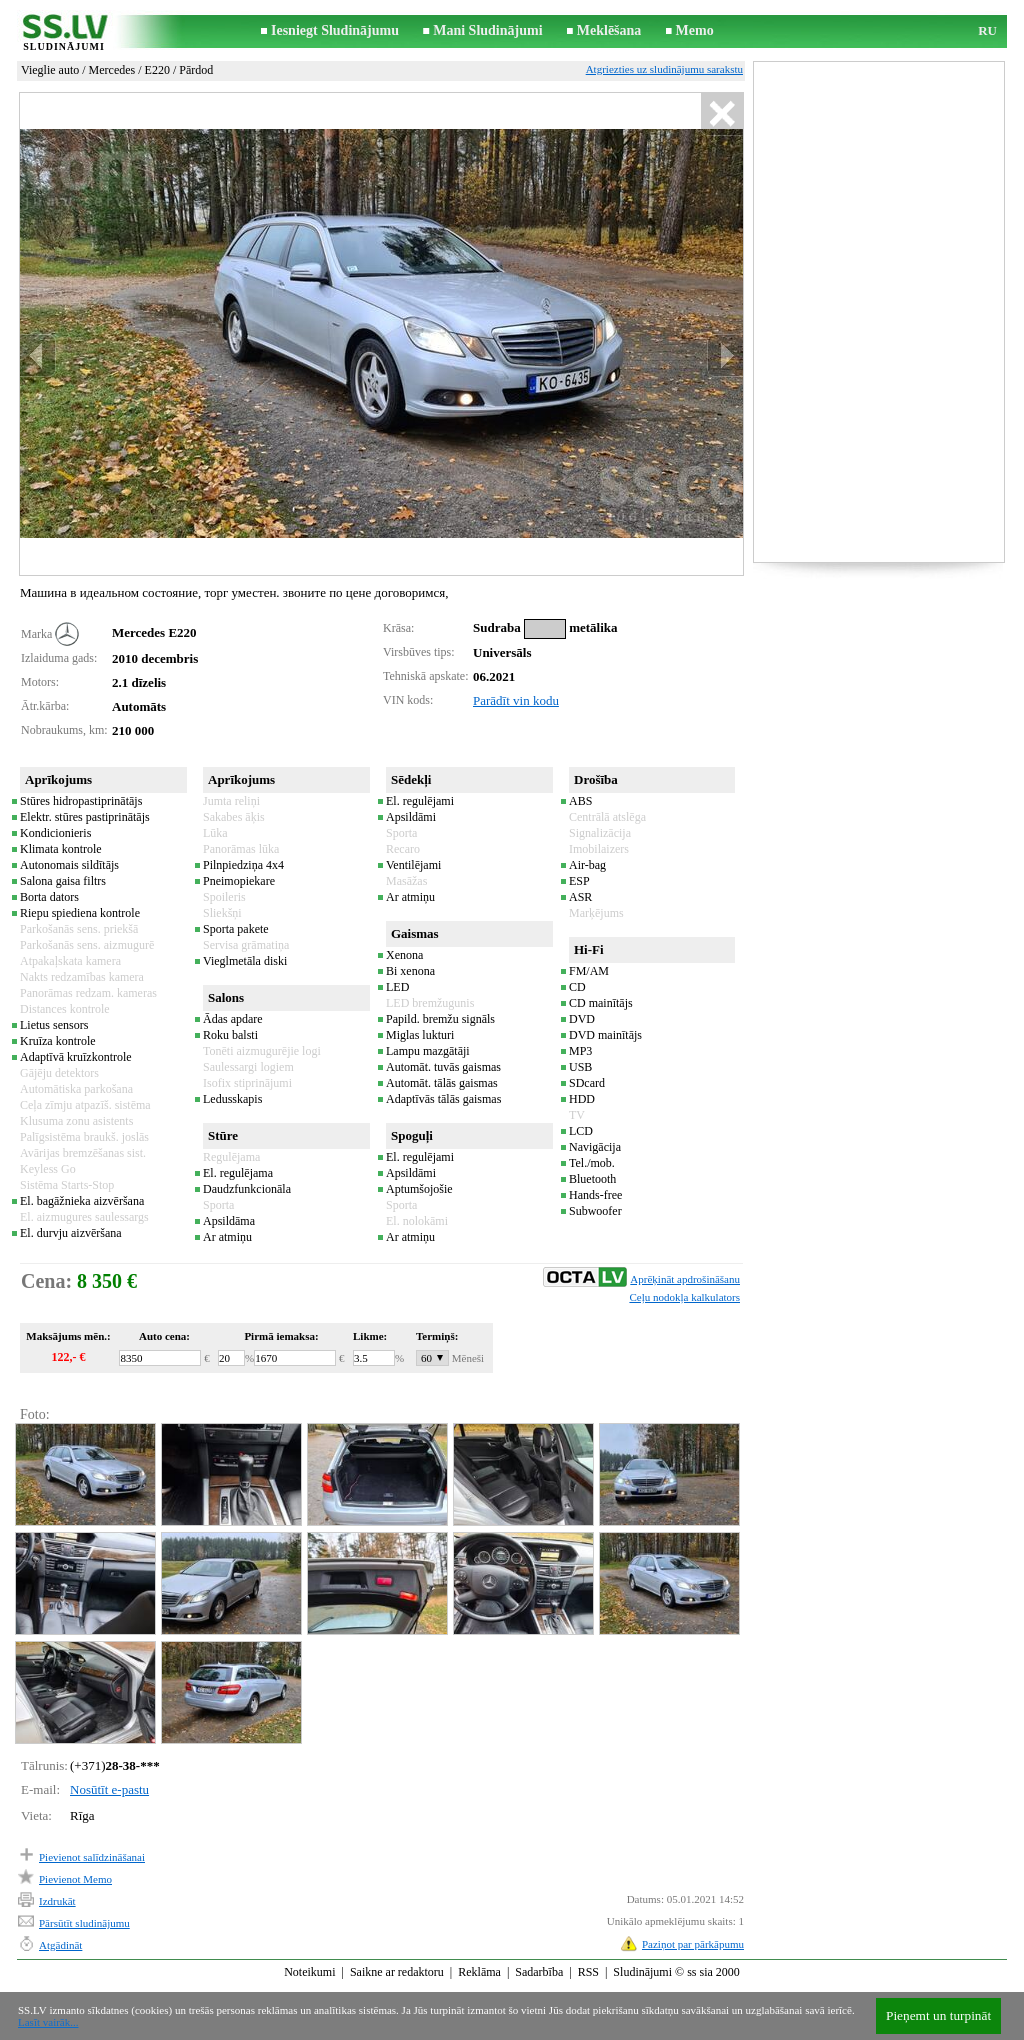 CLASSIFIED AD IMAGE